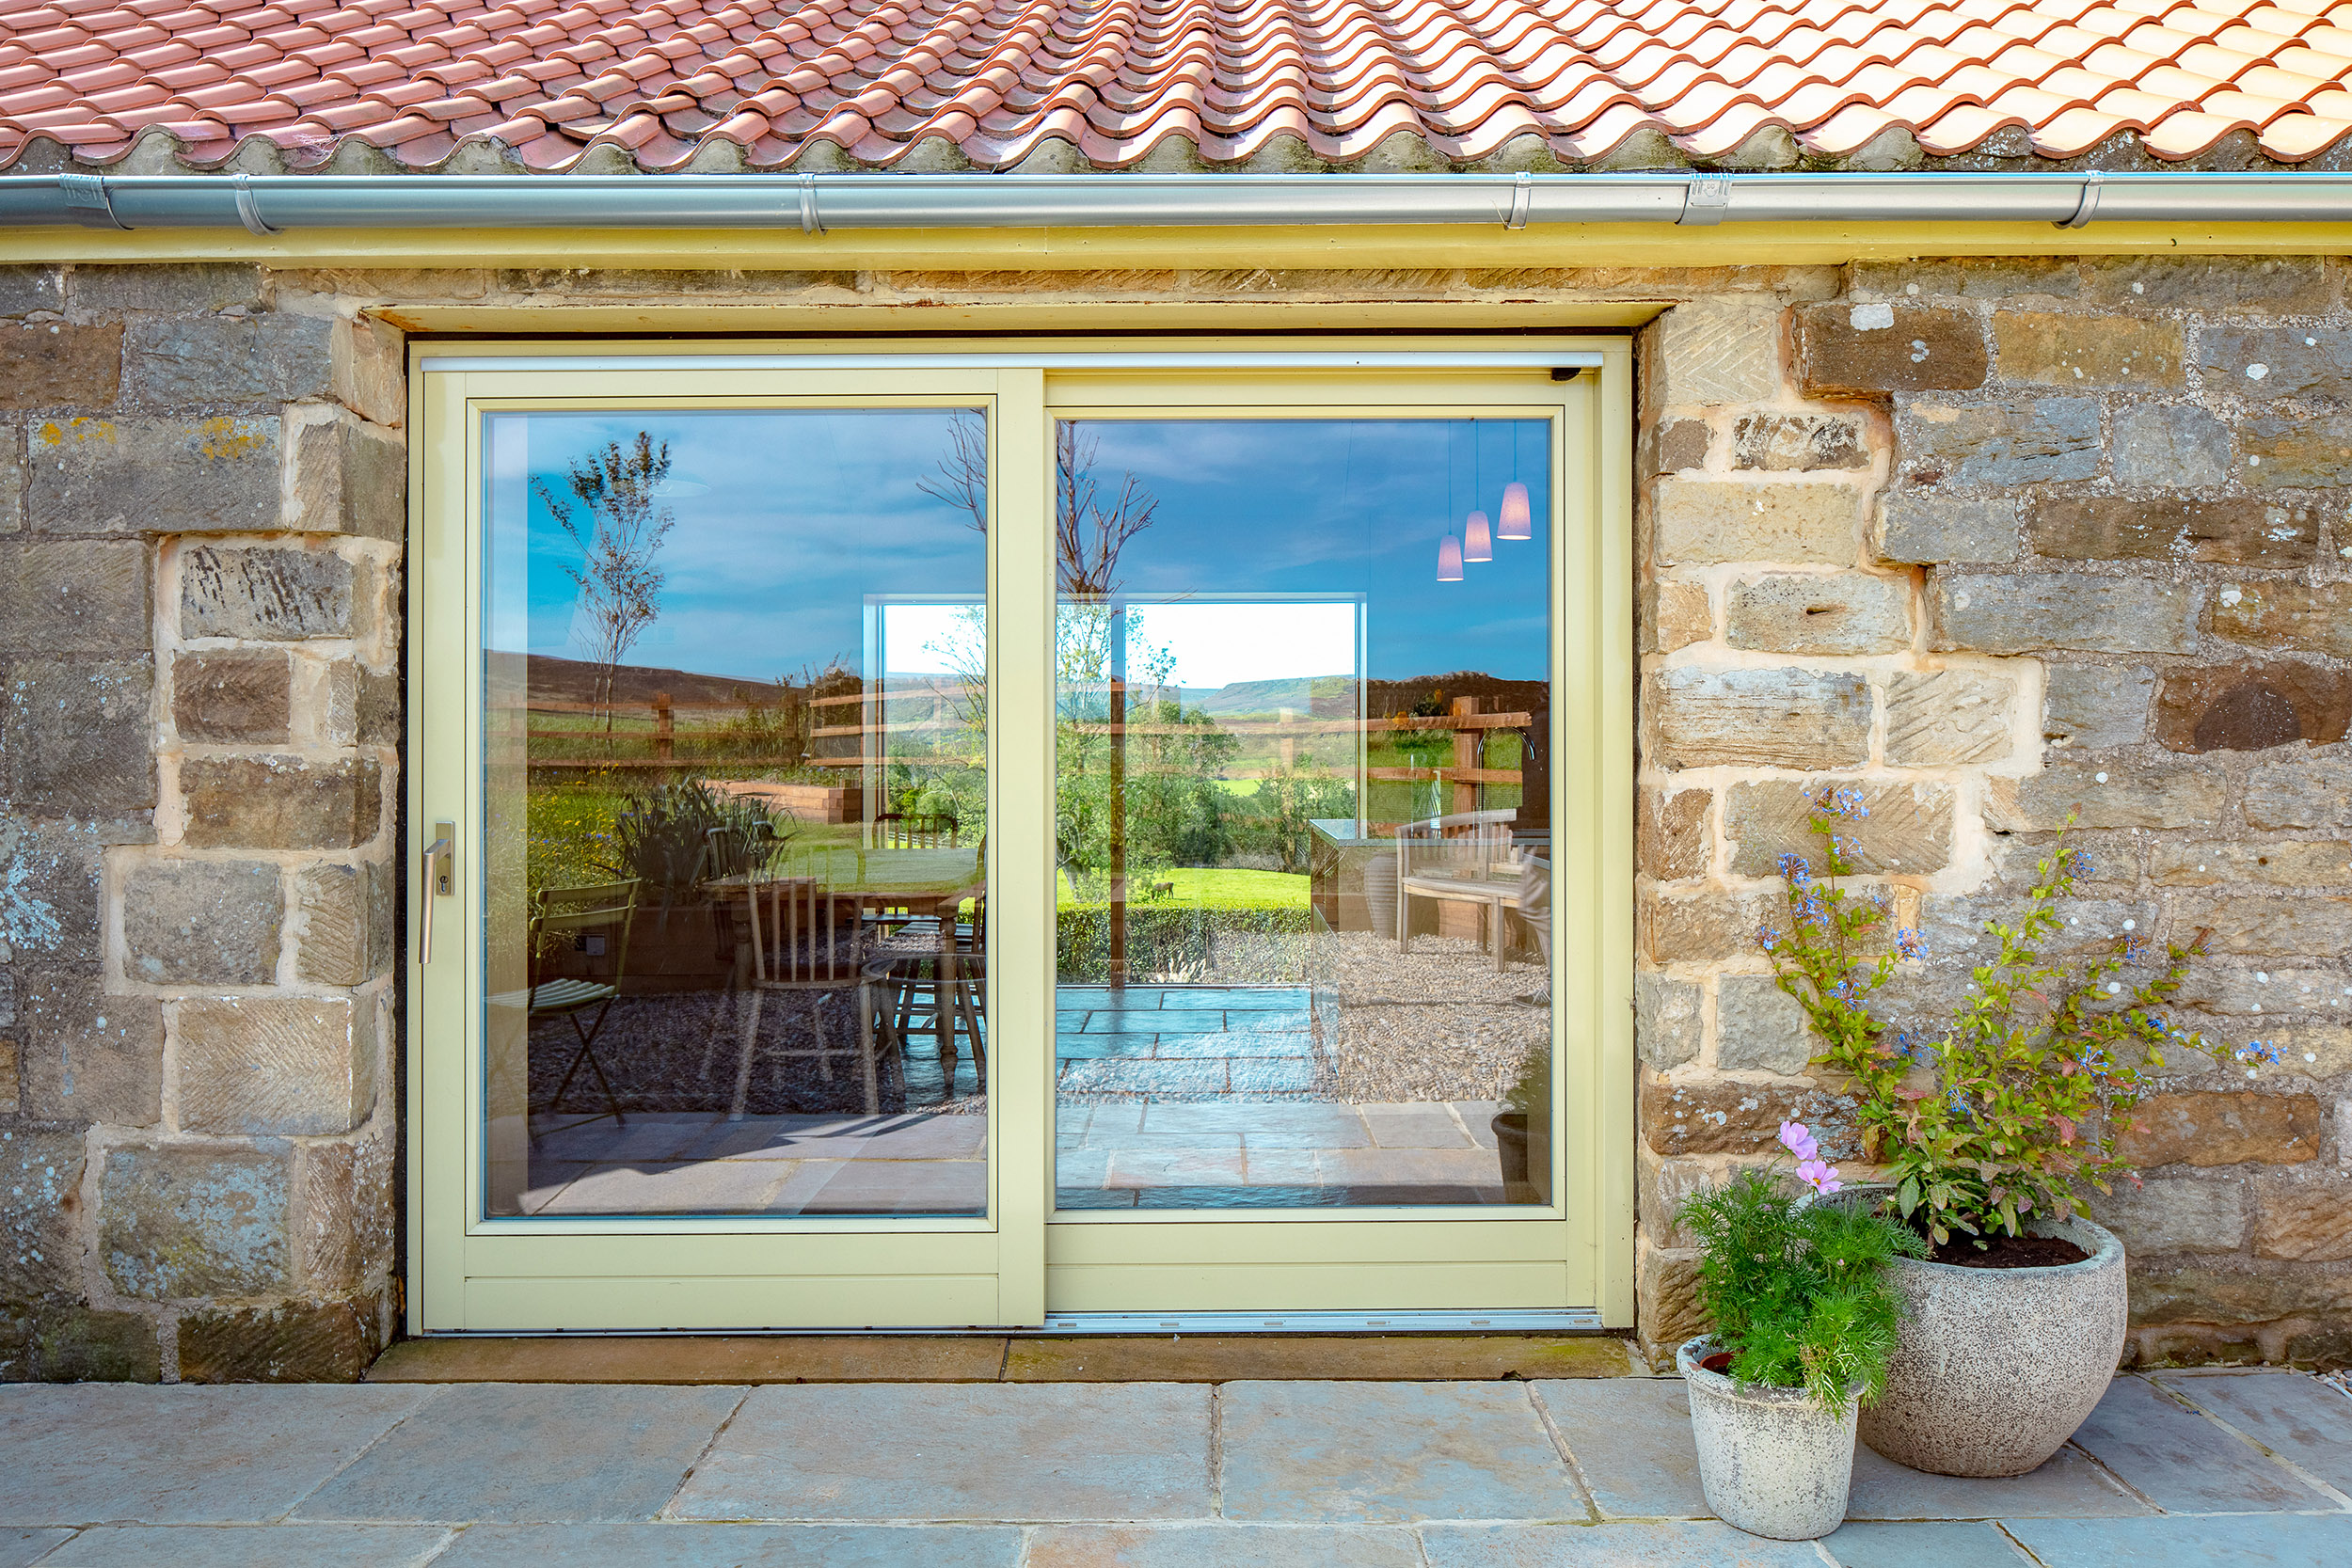 harper-perry-architects-housing-barn-westerdale-north-yorkshire-glazing-patio-barn